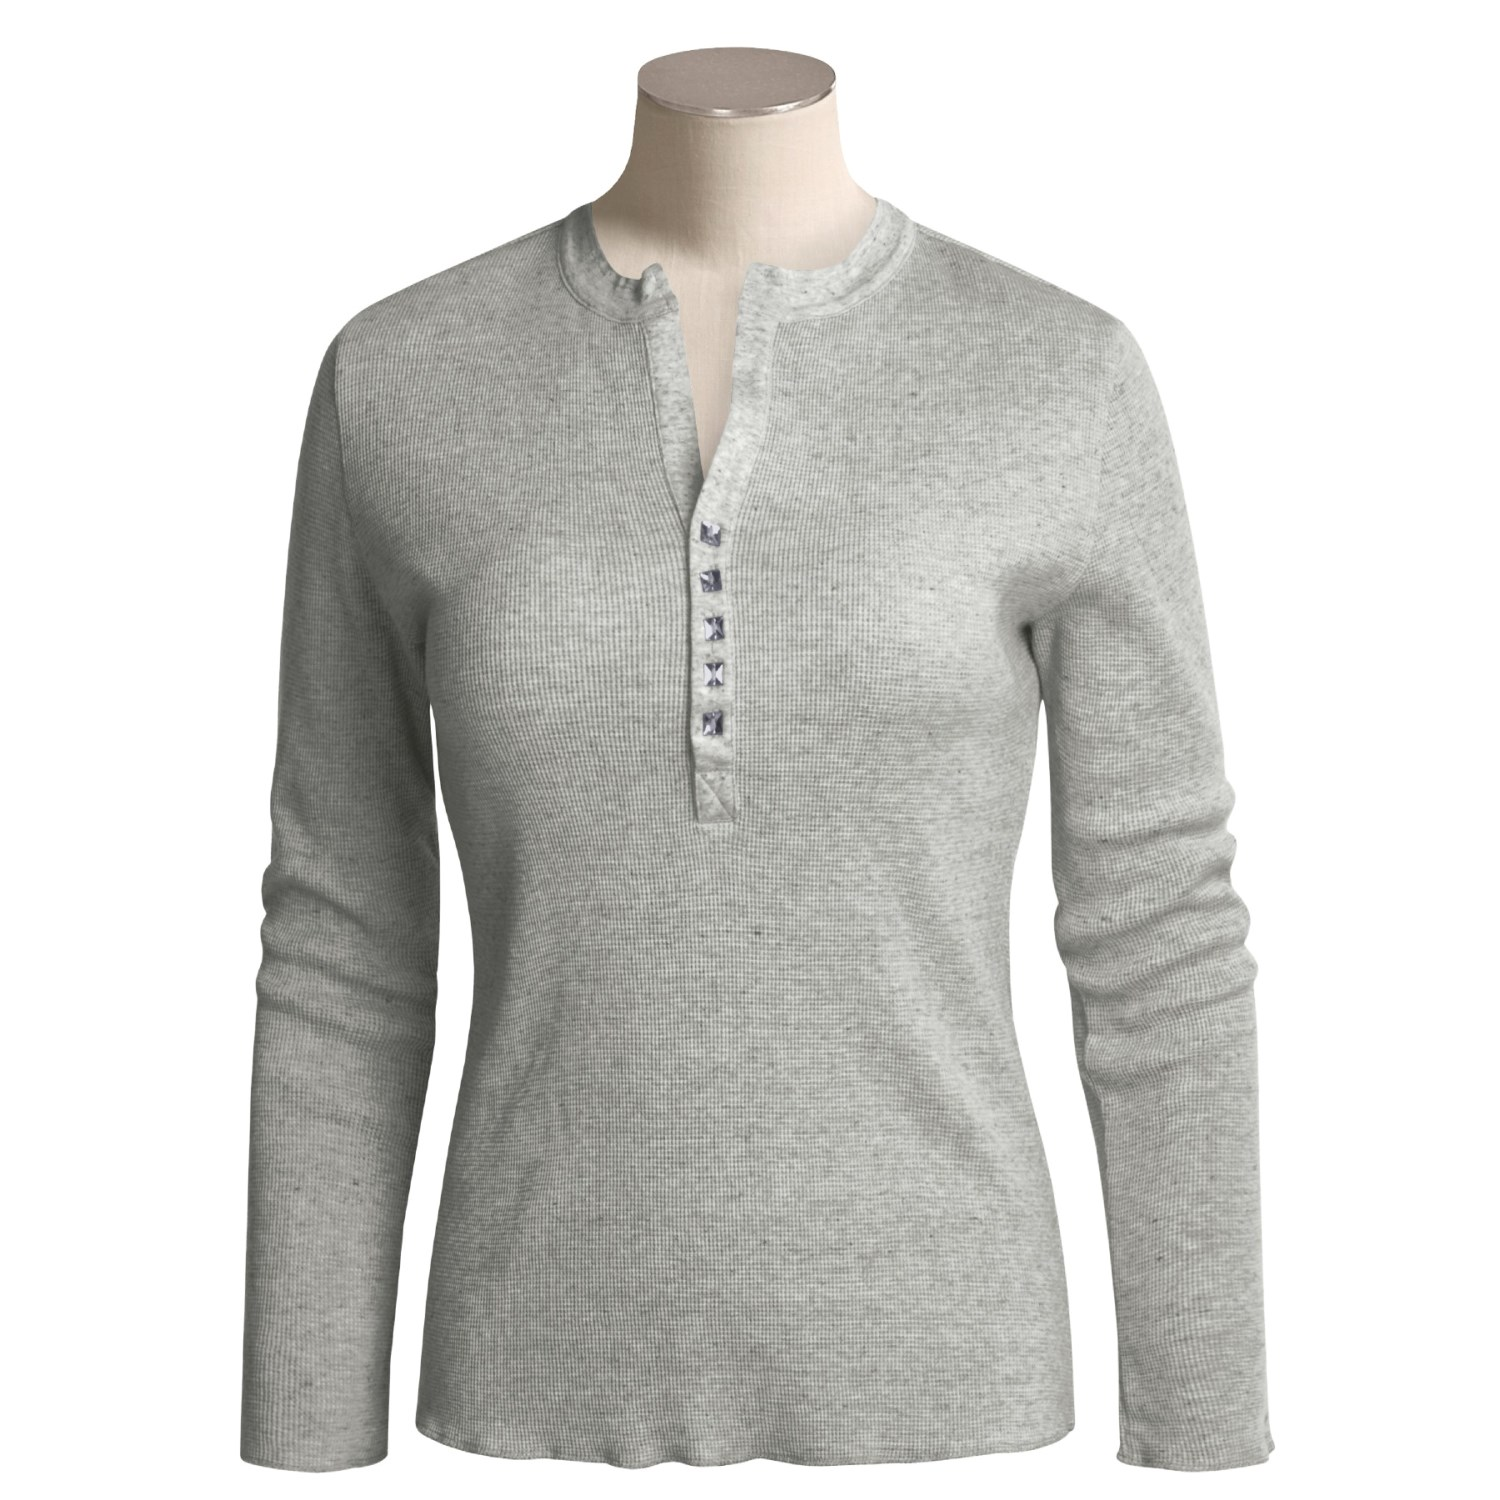 True grit thermal henley shirt for women 2193m save 52 for Women s cotton henley shirts